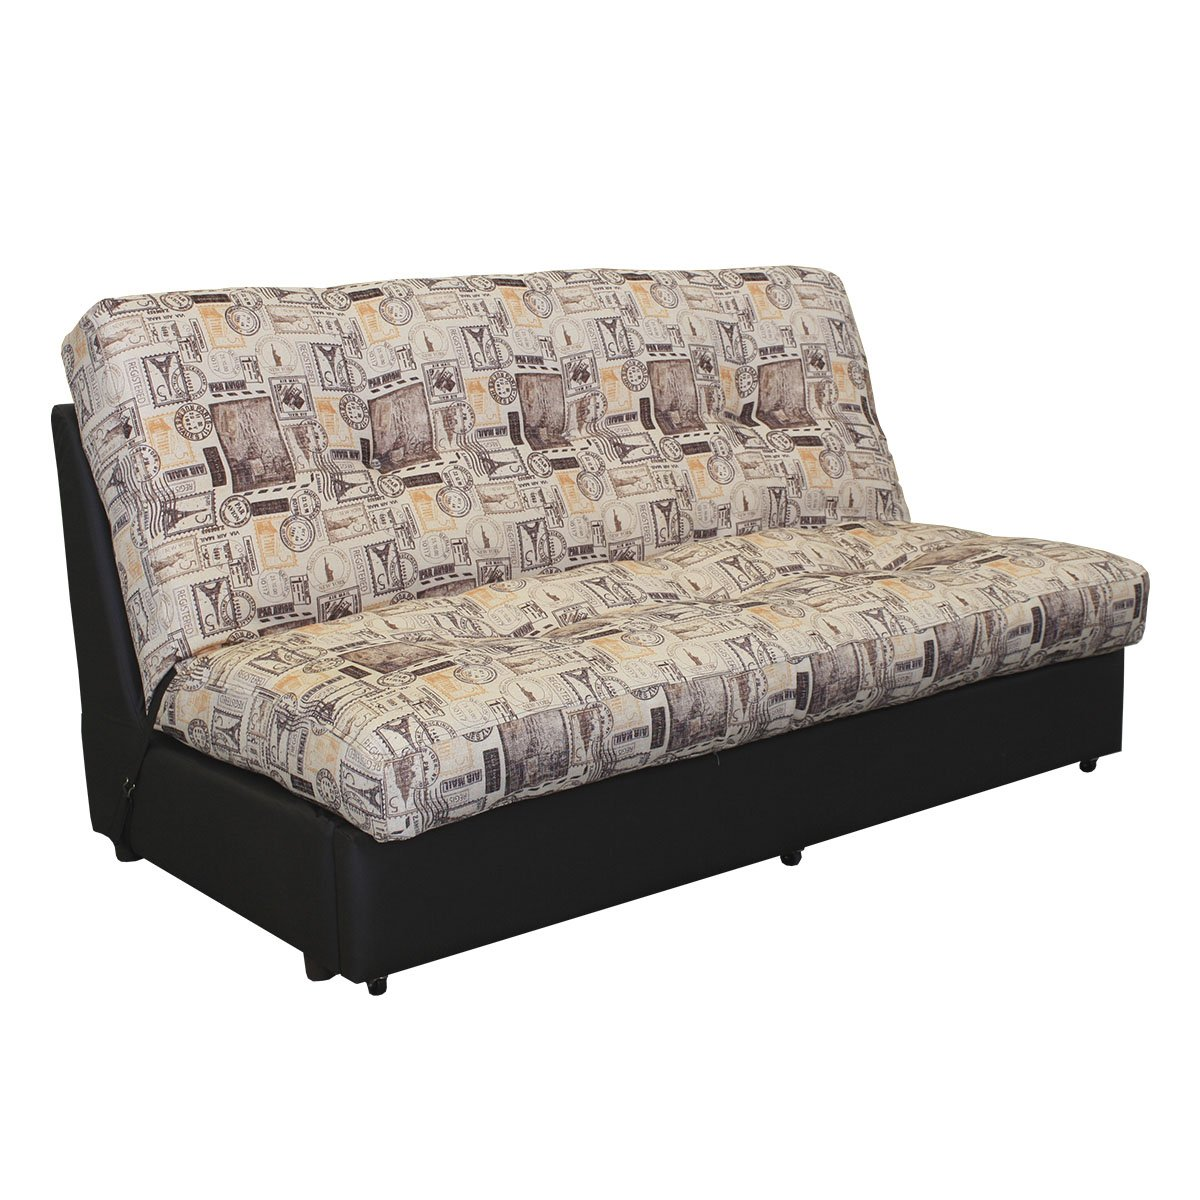 Sofa cama sofas camas sofa brownsvilleclaimhelp thesofa for Sofas precios baratos